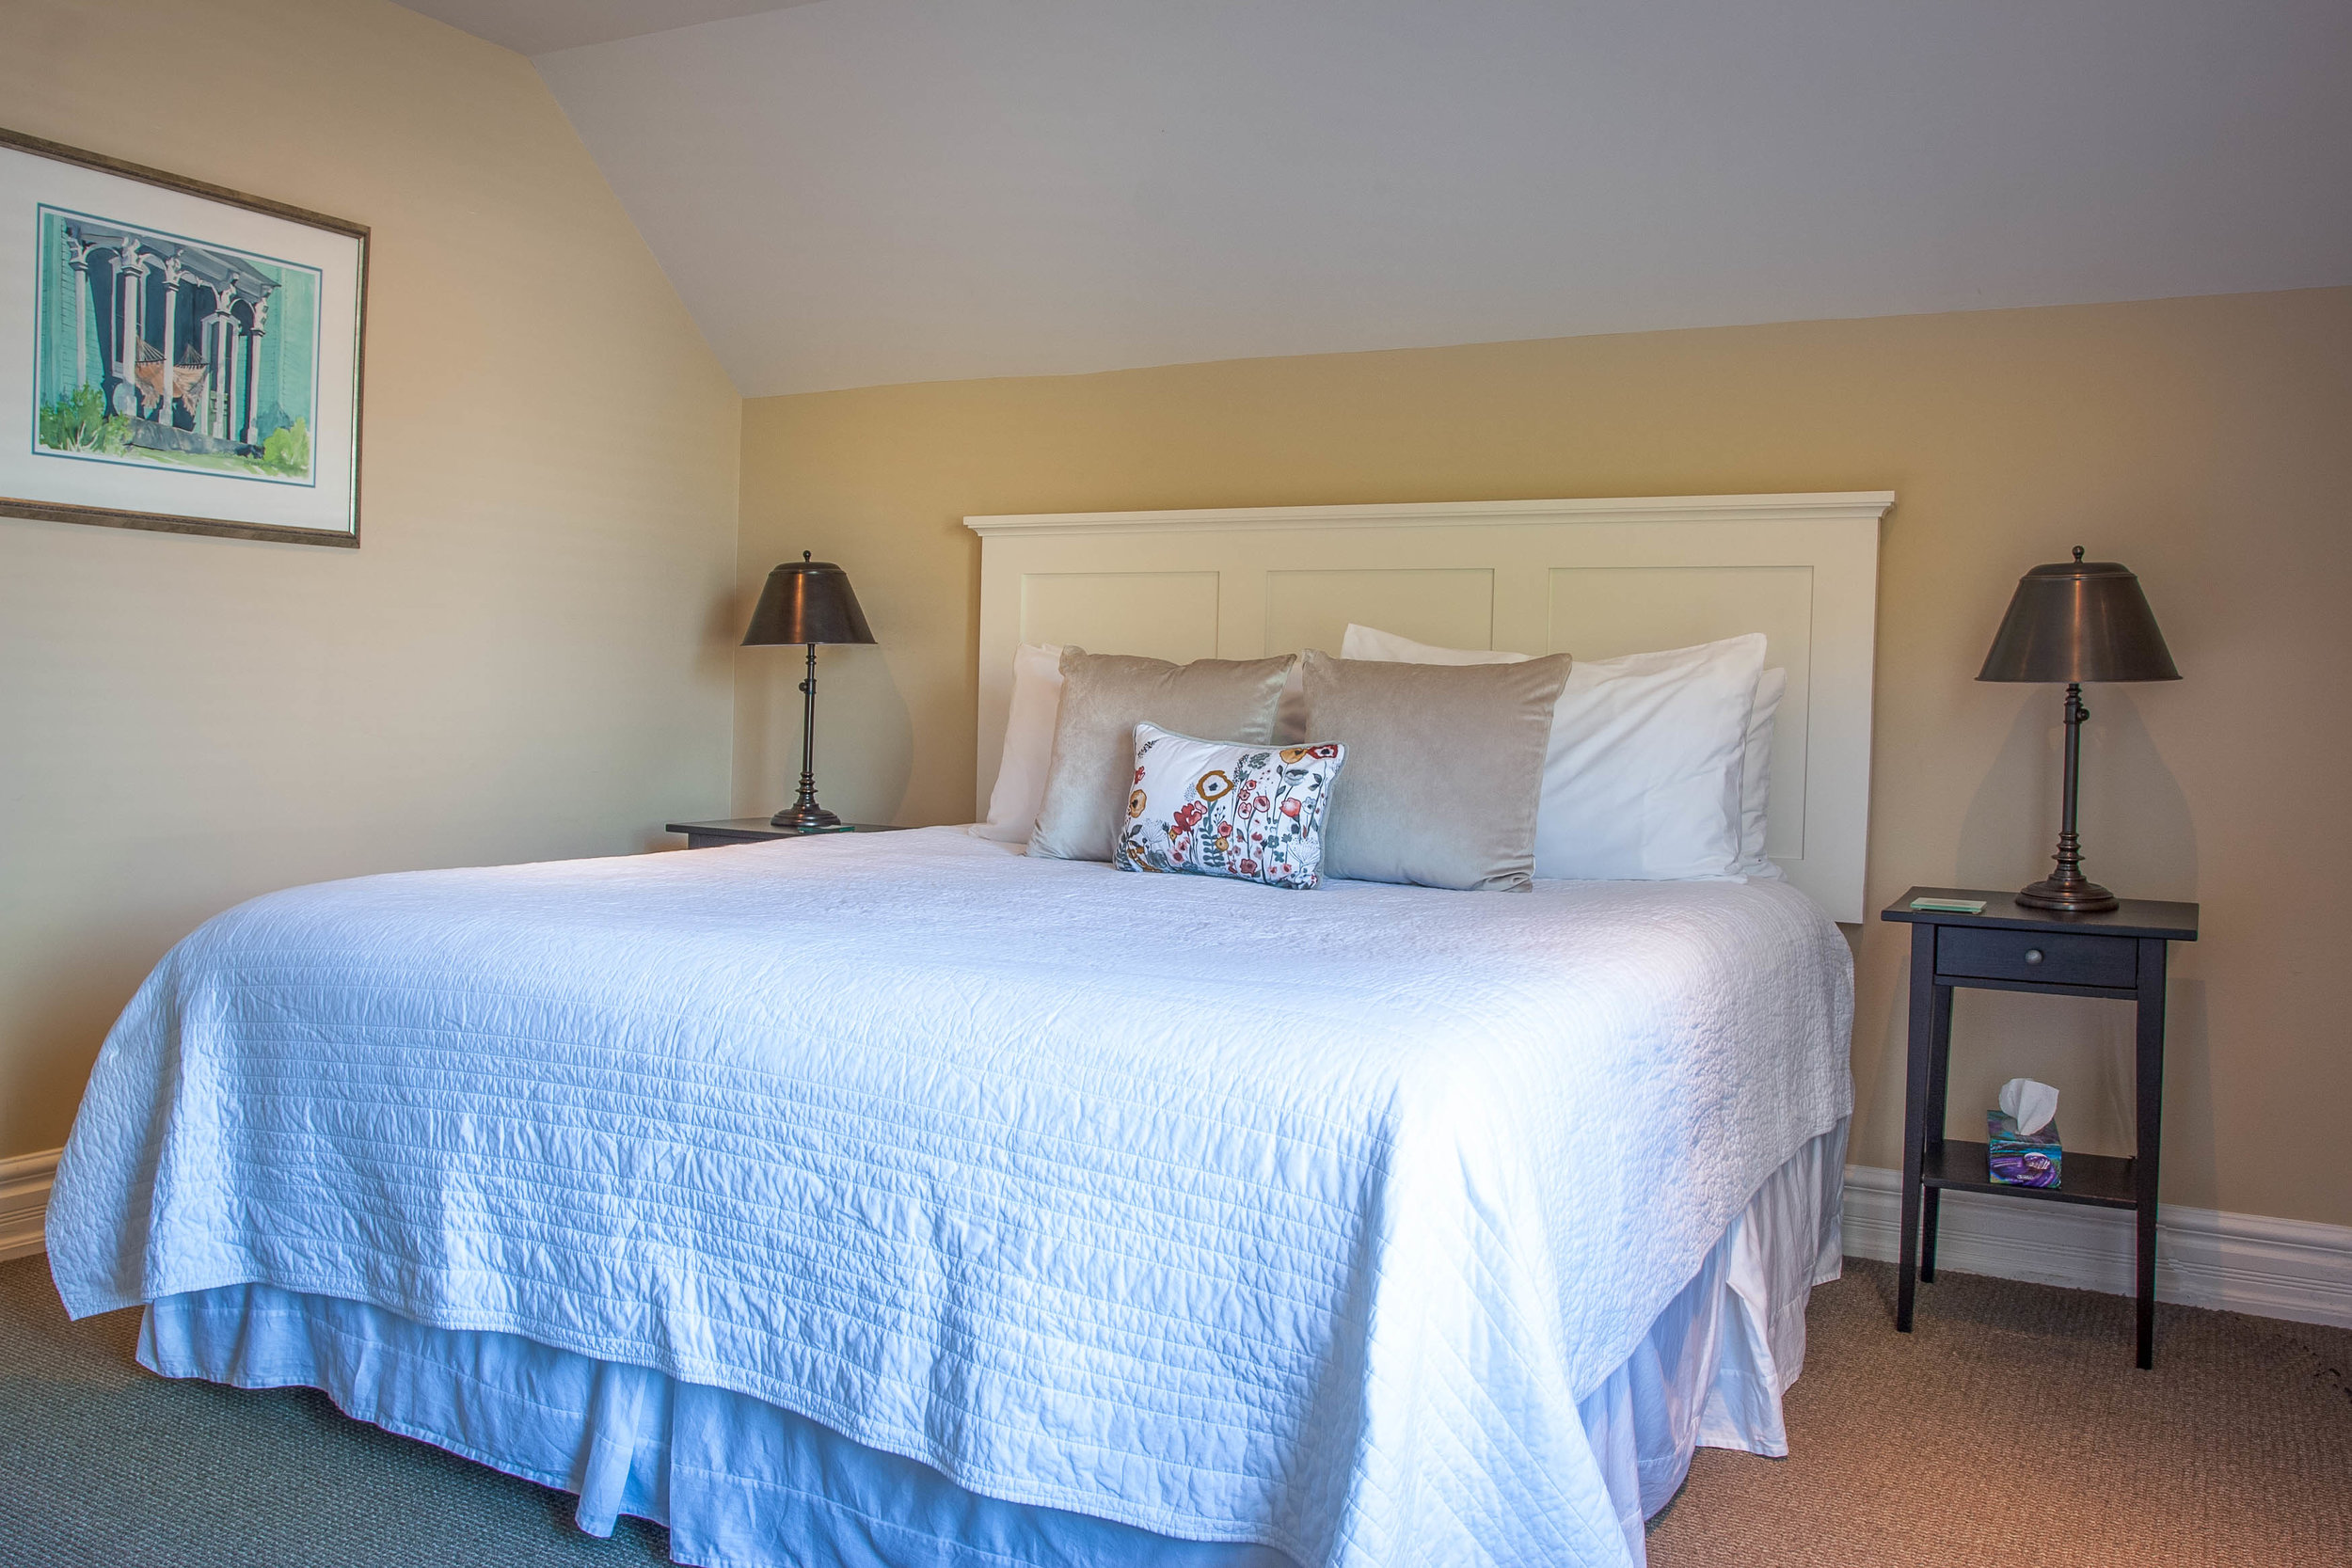 interior suite bedroom-.jpg